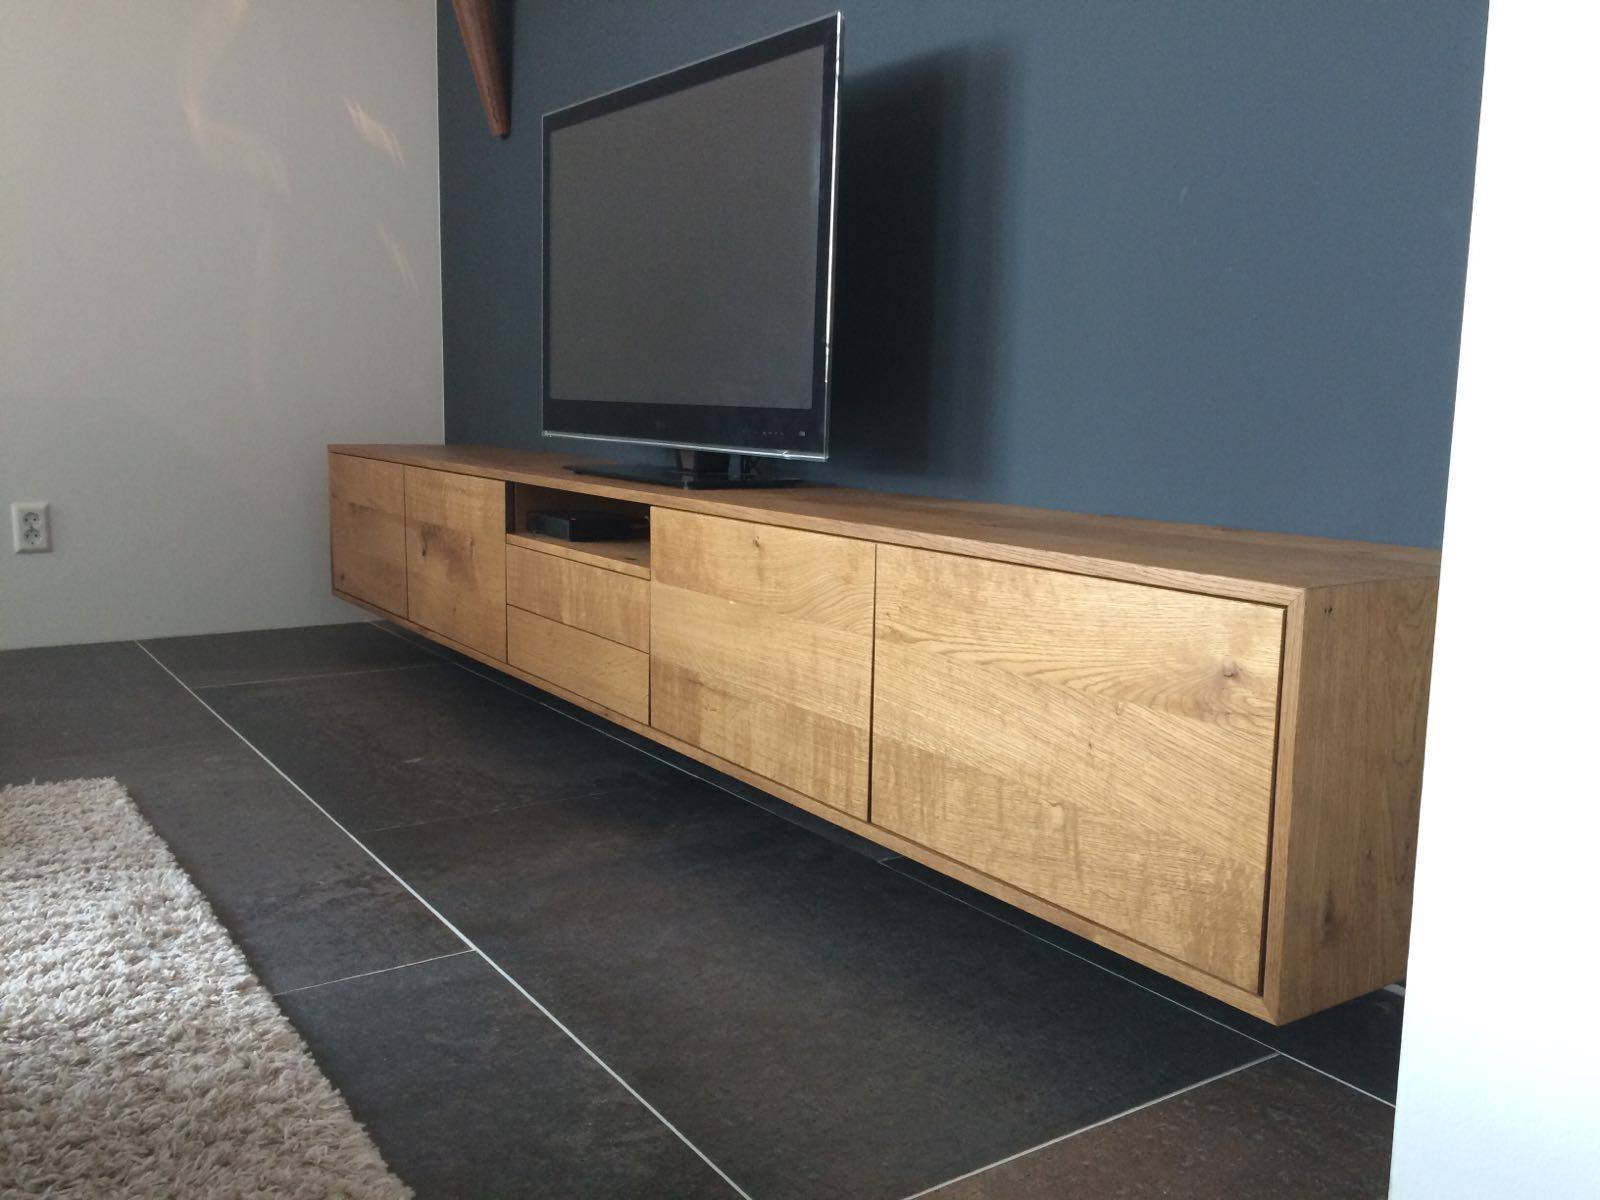 Tv Meubel Dressoir Kast.Wit Hoogglans Dressoir Meubel Of Massief Houten Tv Meubel